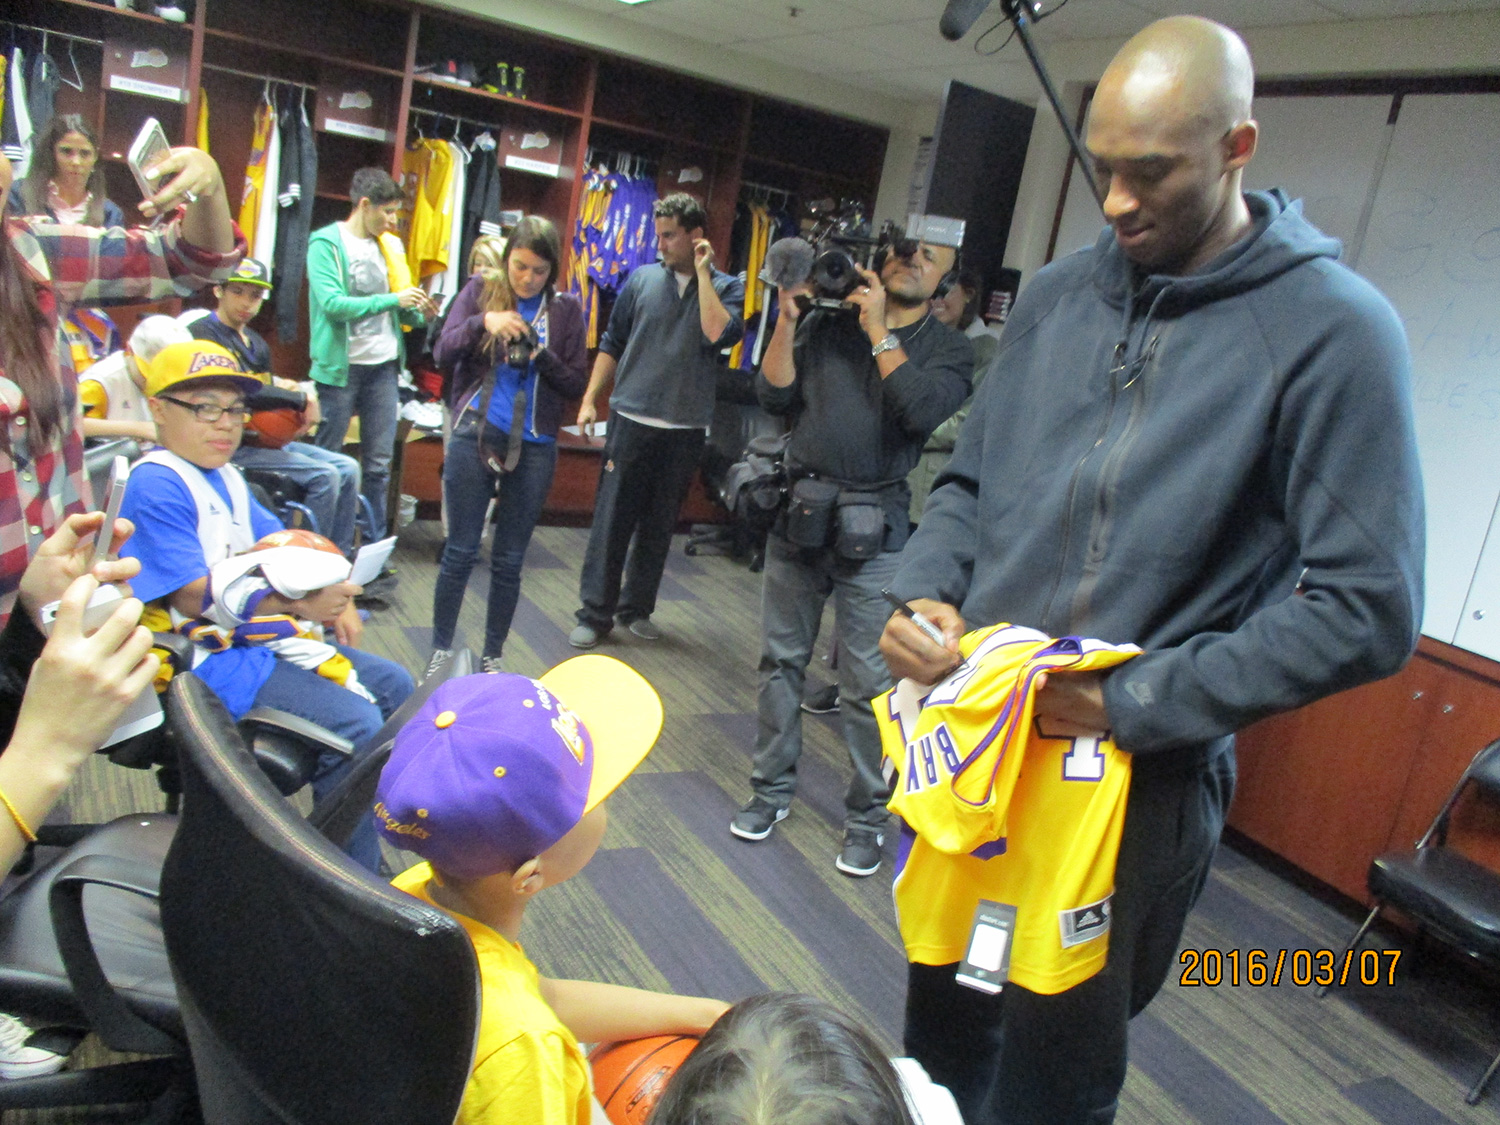 Kobe Bryant Granted Over 200 Make-A-Wish Requests During His NBA Career